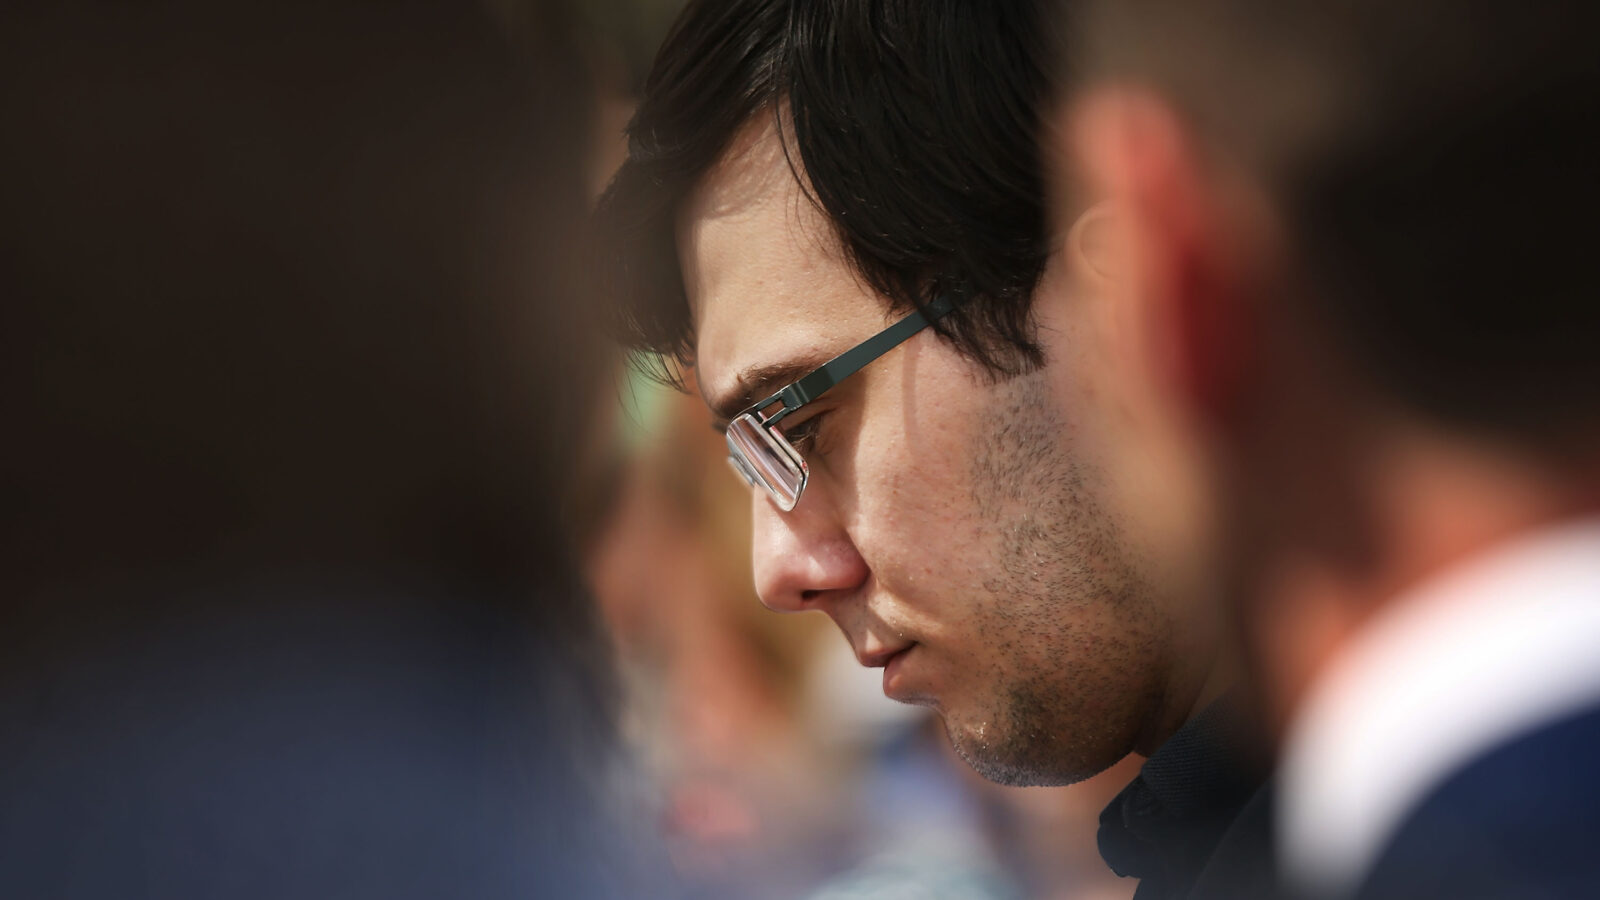 Martin Shkreli is trying to use the coronavirus pandemic to get out of prison